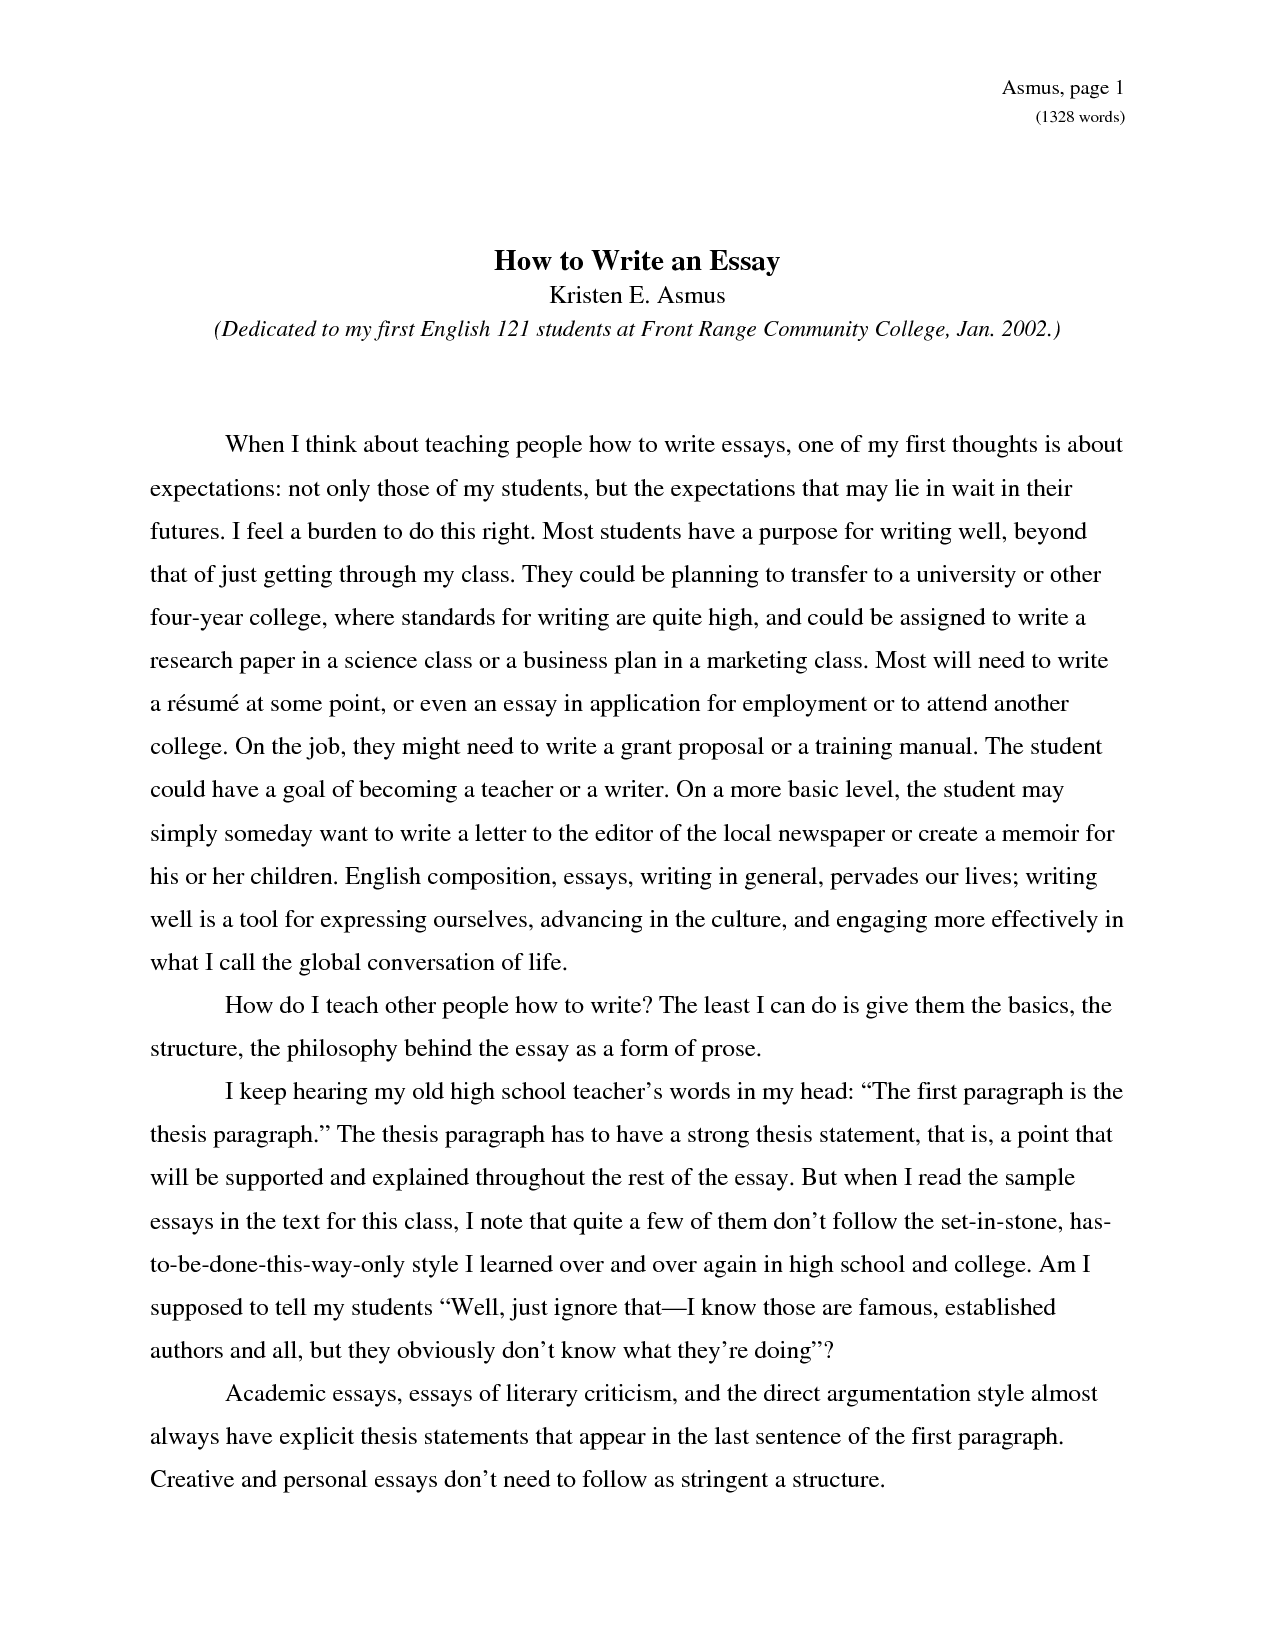 an introduction to the creative essay on the topic of rights All of us have the rights to say or do whatever  the topic if immigration has always been a very  essay introduction belonging is about connections made.